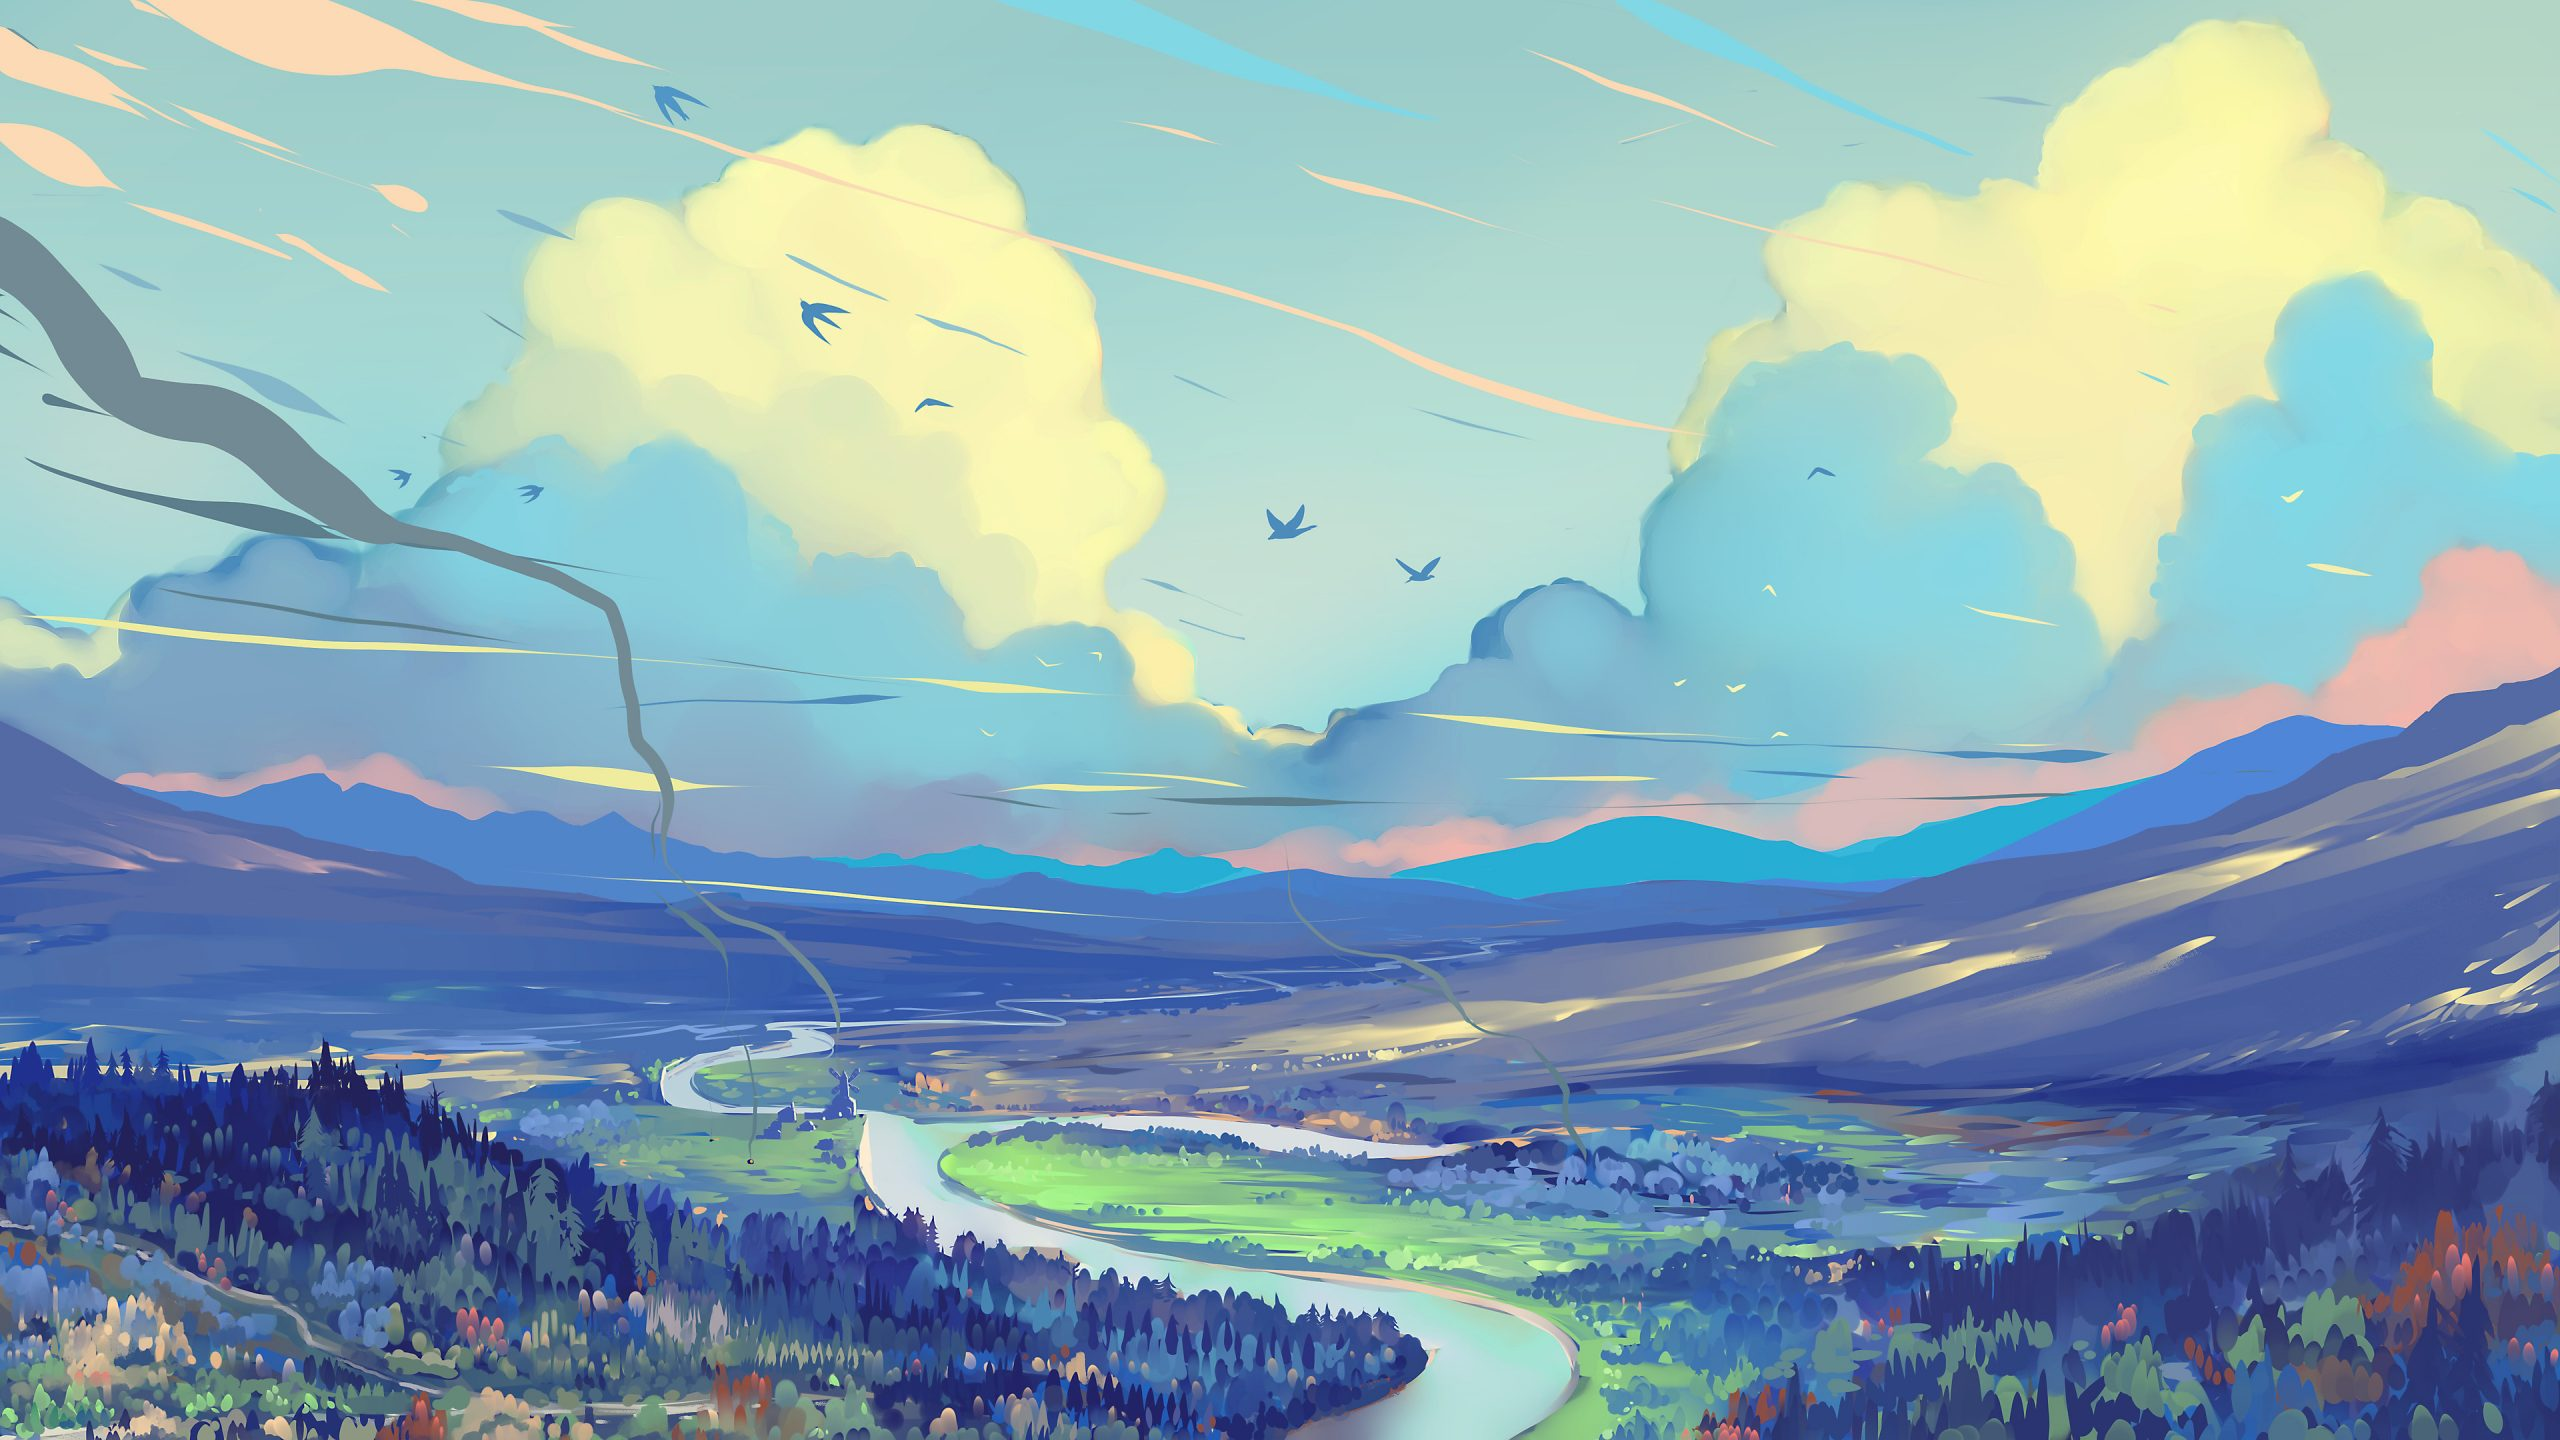 white blue red clouds scenery digital art painting 4k